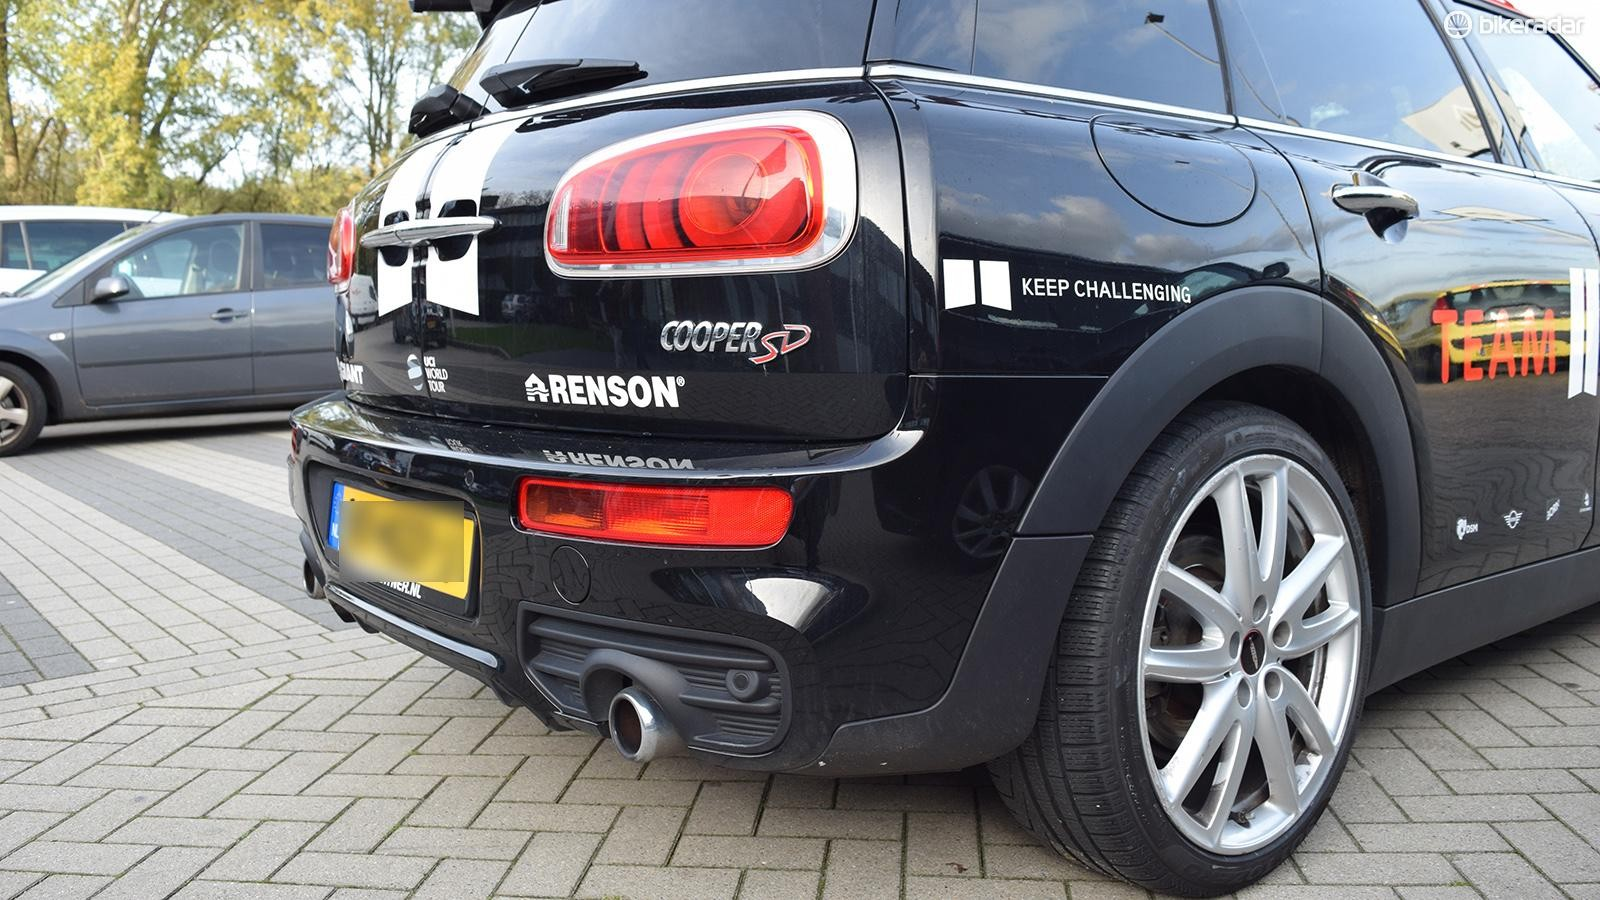 The Mini Cooper Clubman SD has a maximum output of 190hp/139,745 watts